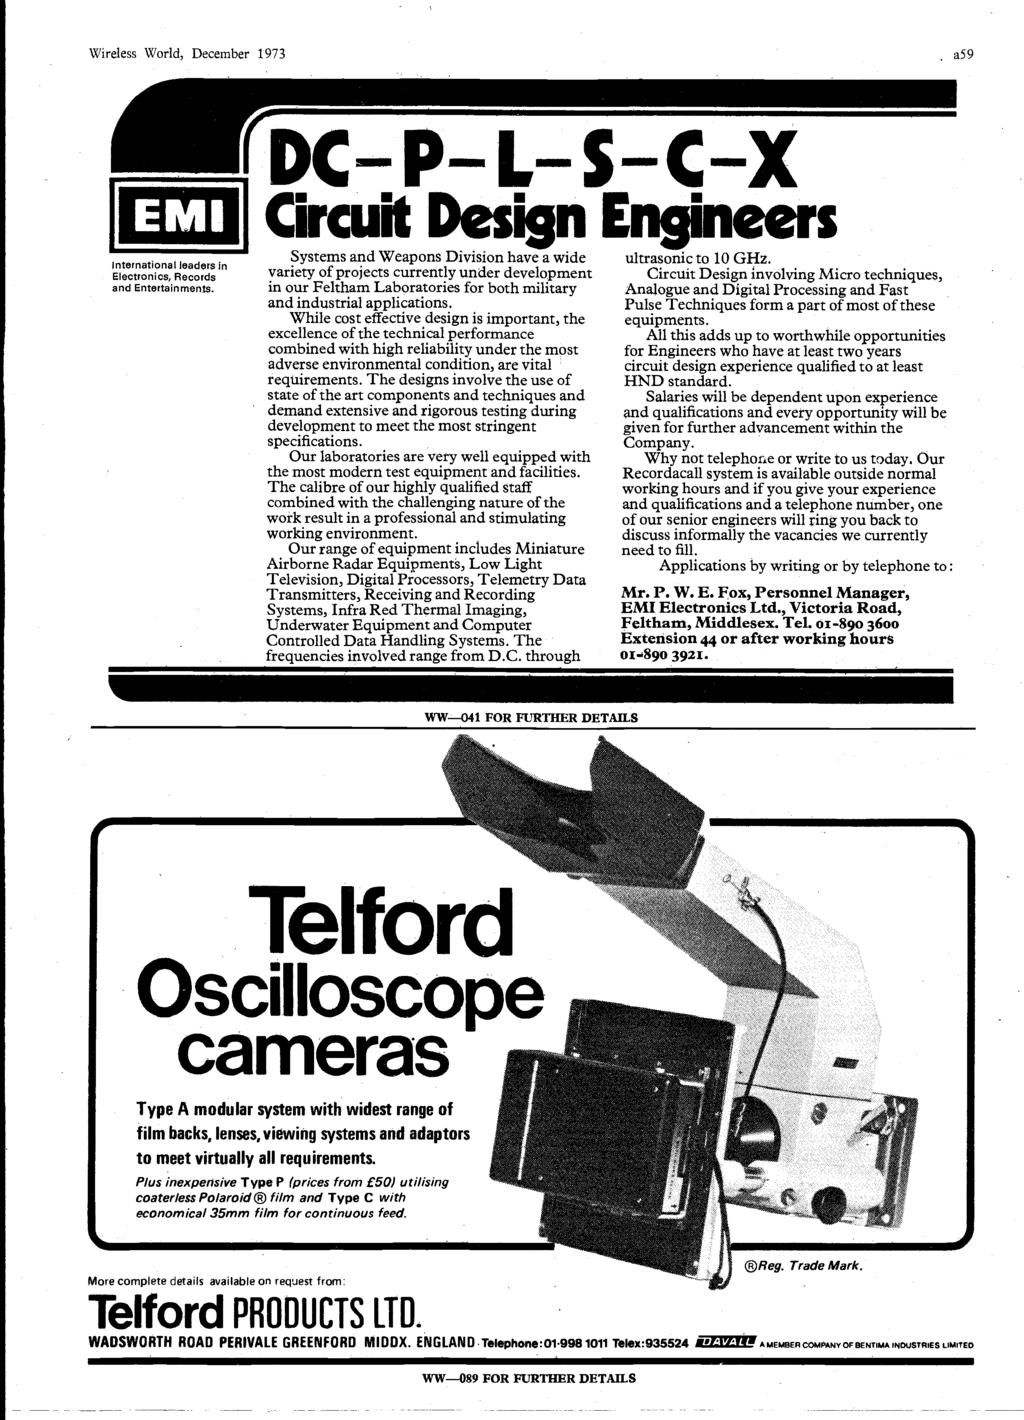 Word Ic Crossover Networks Using Opto Couplers December P Pdf In Flickering Circuits And Assorted Lens Sizes From 3mm 10mm Wireless World 1973 A59 International Leaders Electronics Records Entertainments